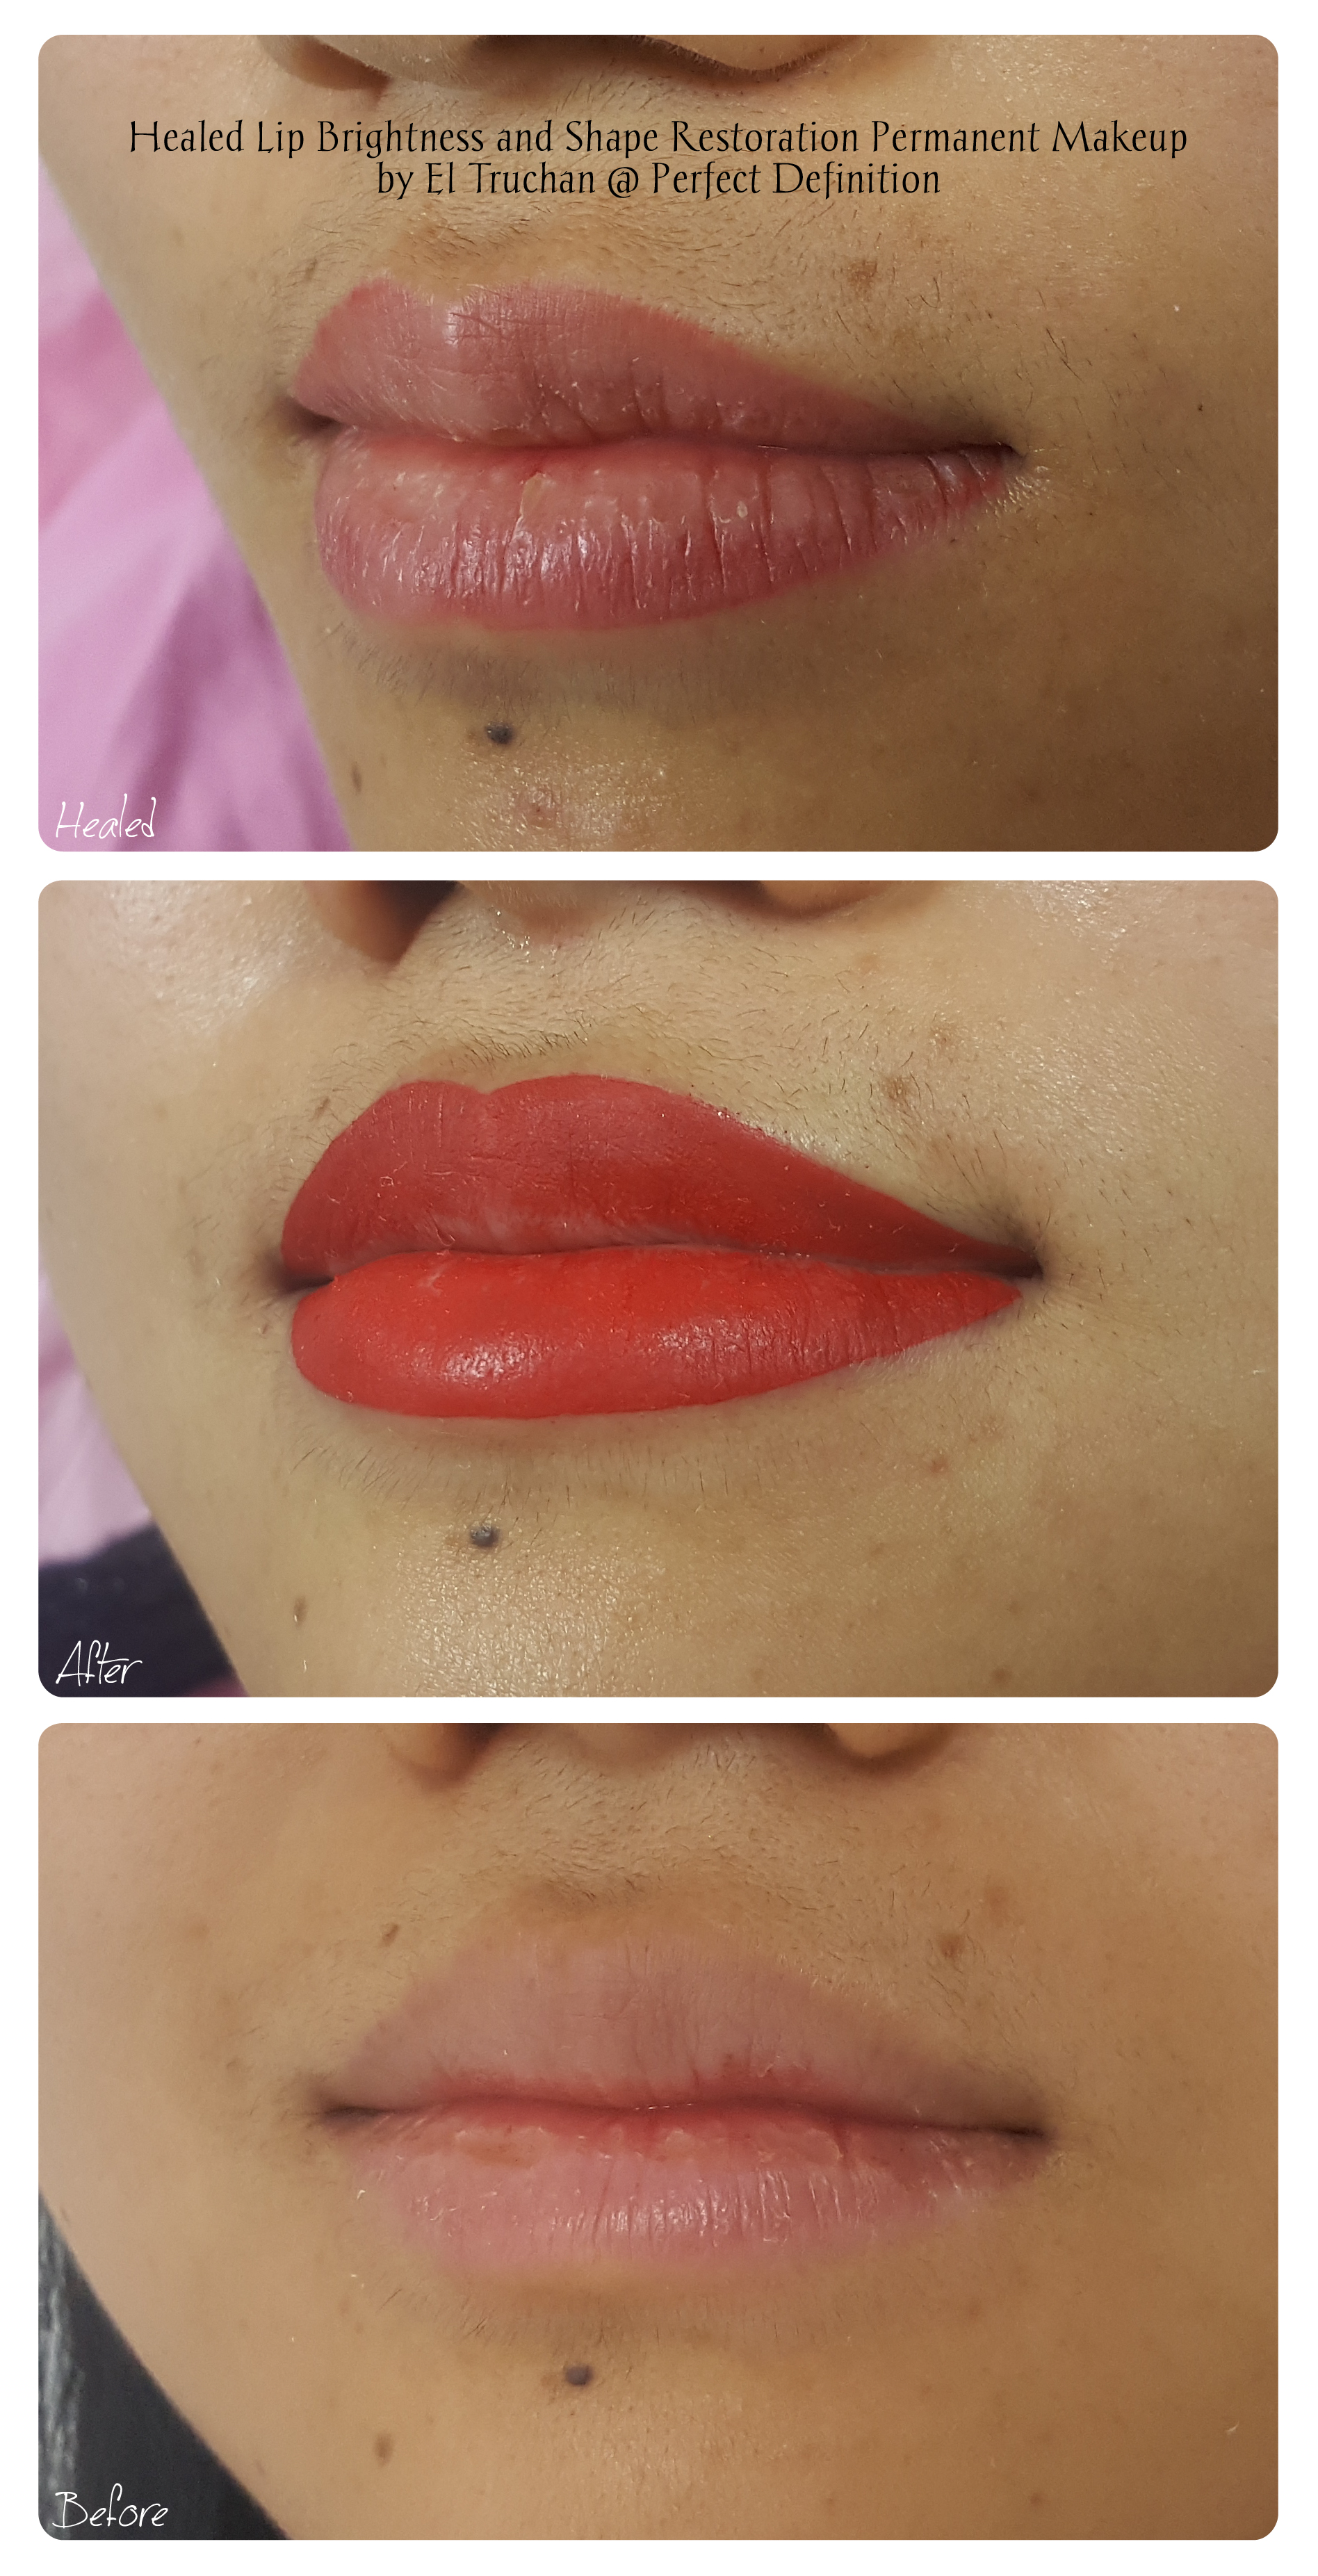 Healed Lip Brightness and Shape Restorat